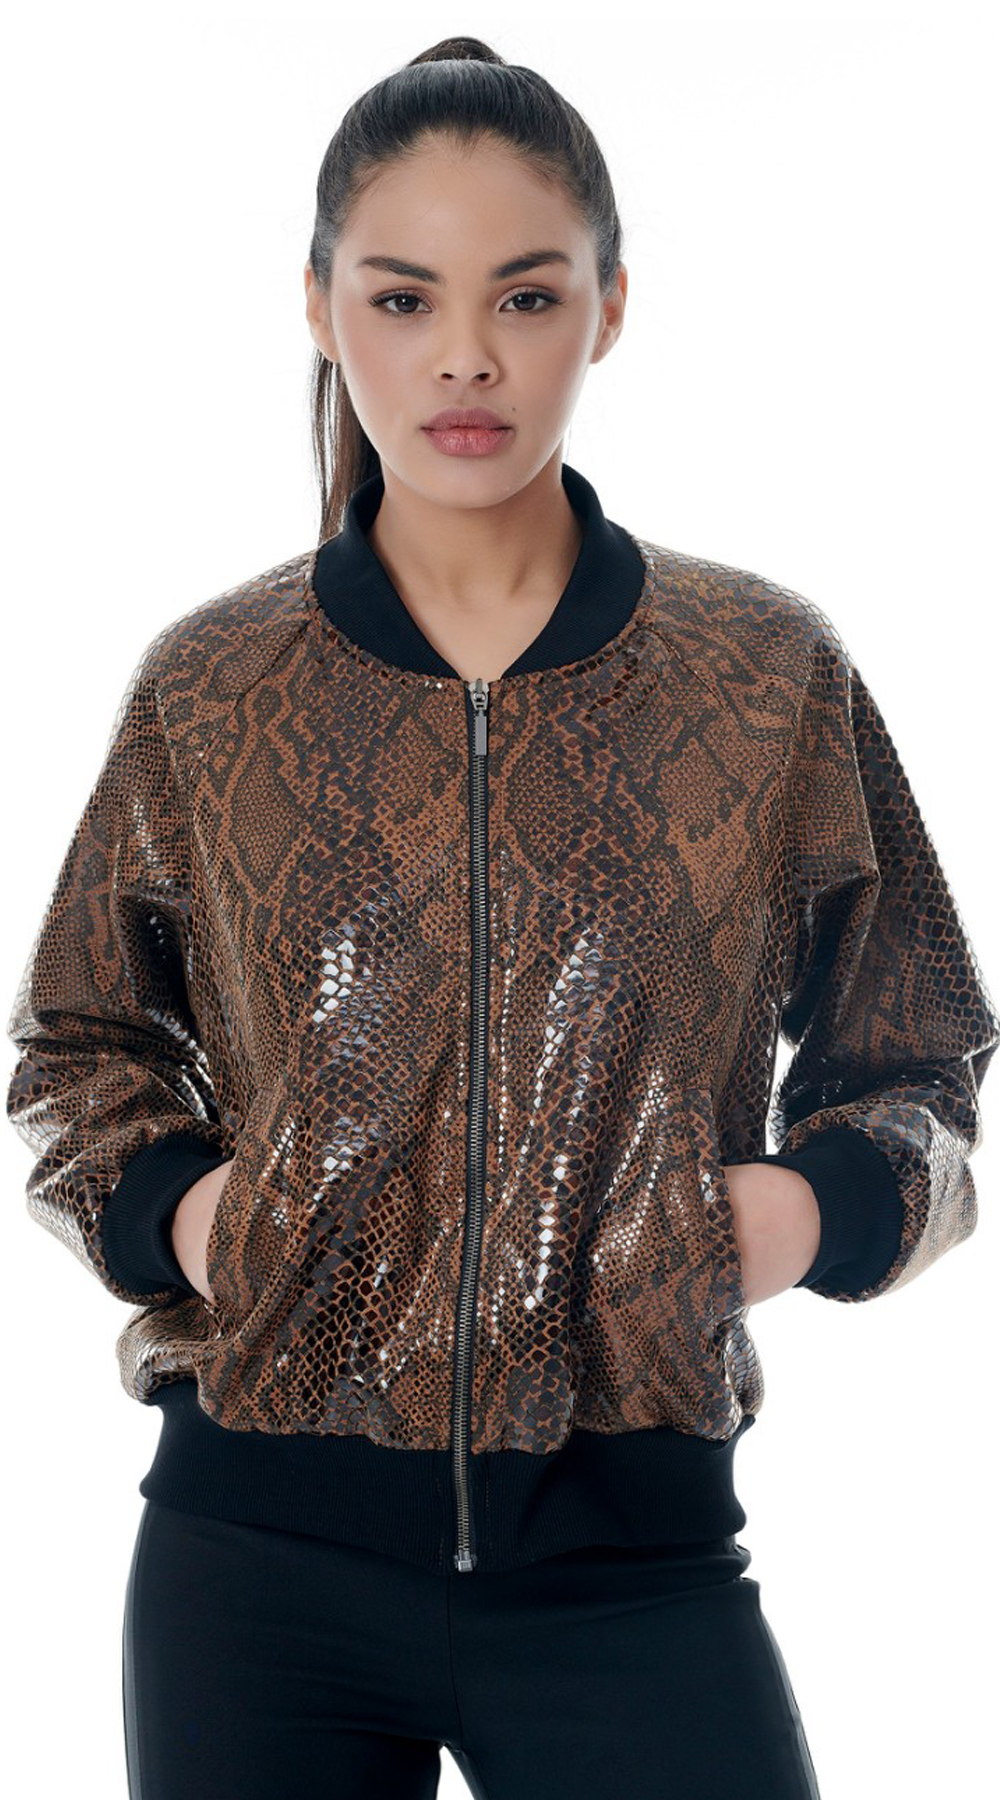 Snake Print Bomper Jacket Φιλμ ONLINE - ONLINE - FA18ON-41185 animal prints animal prints